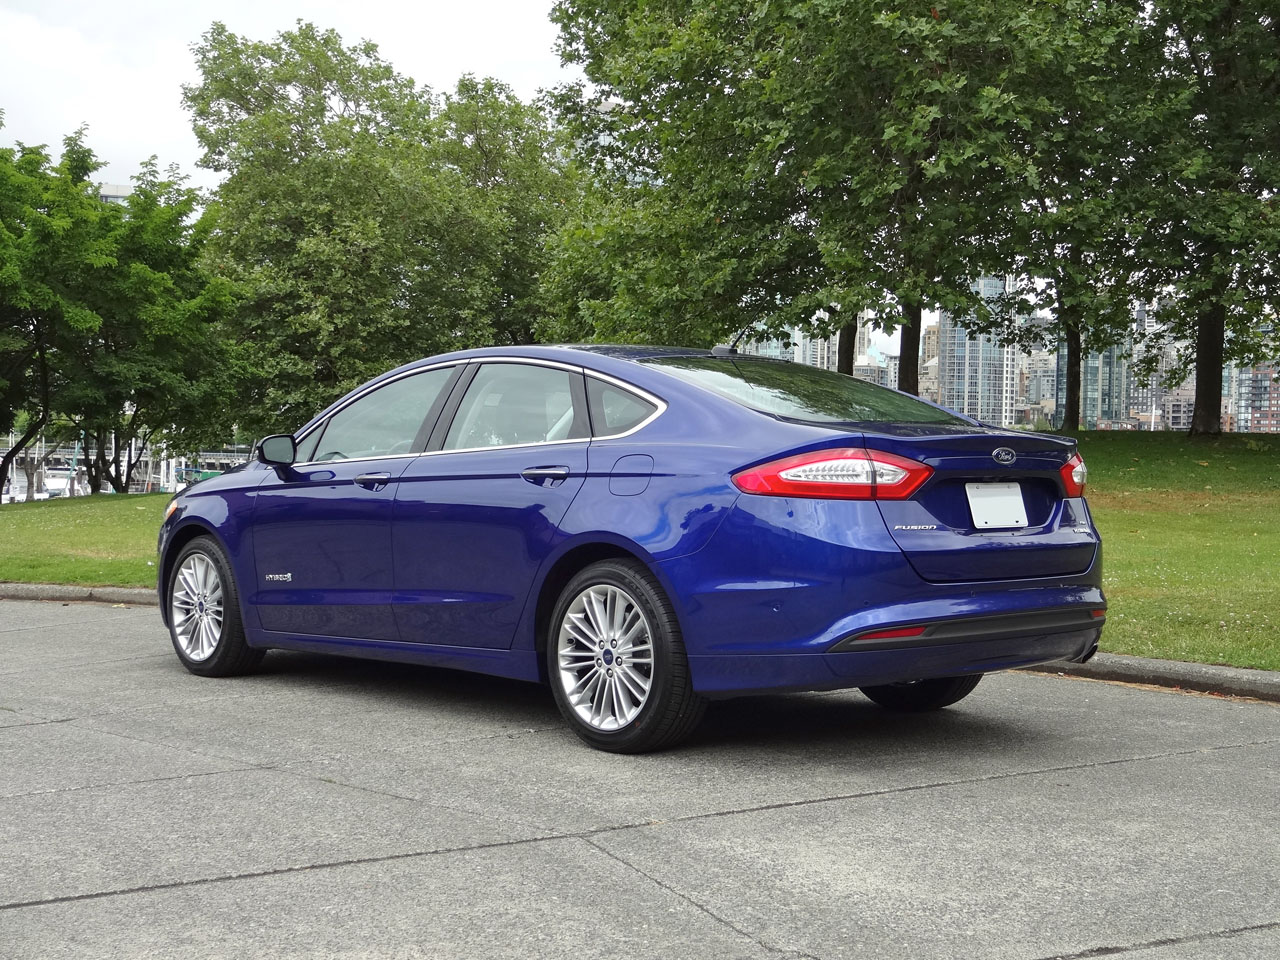 Ford Fusion Hybrid Road Test